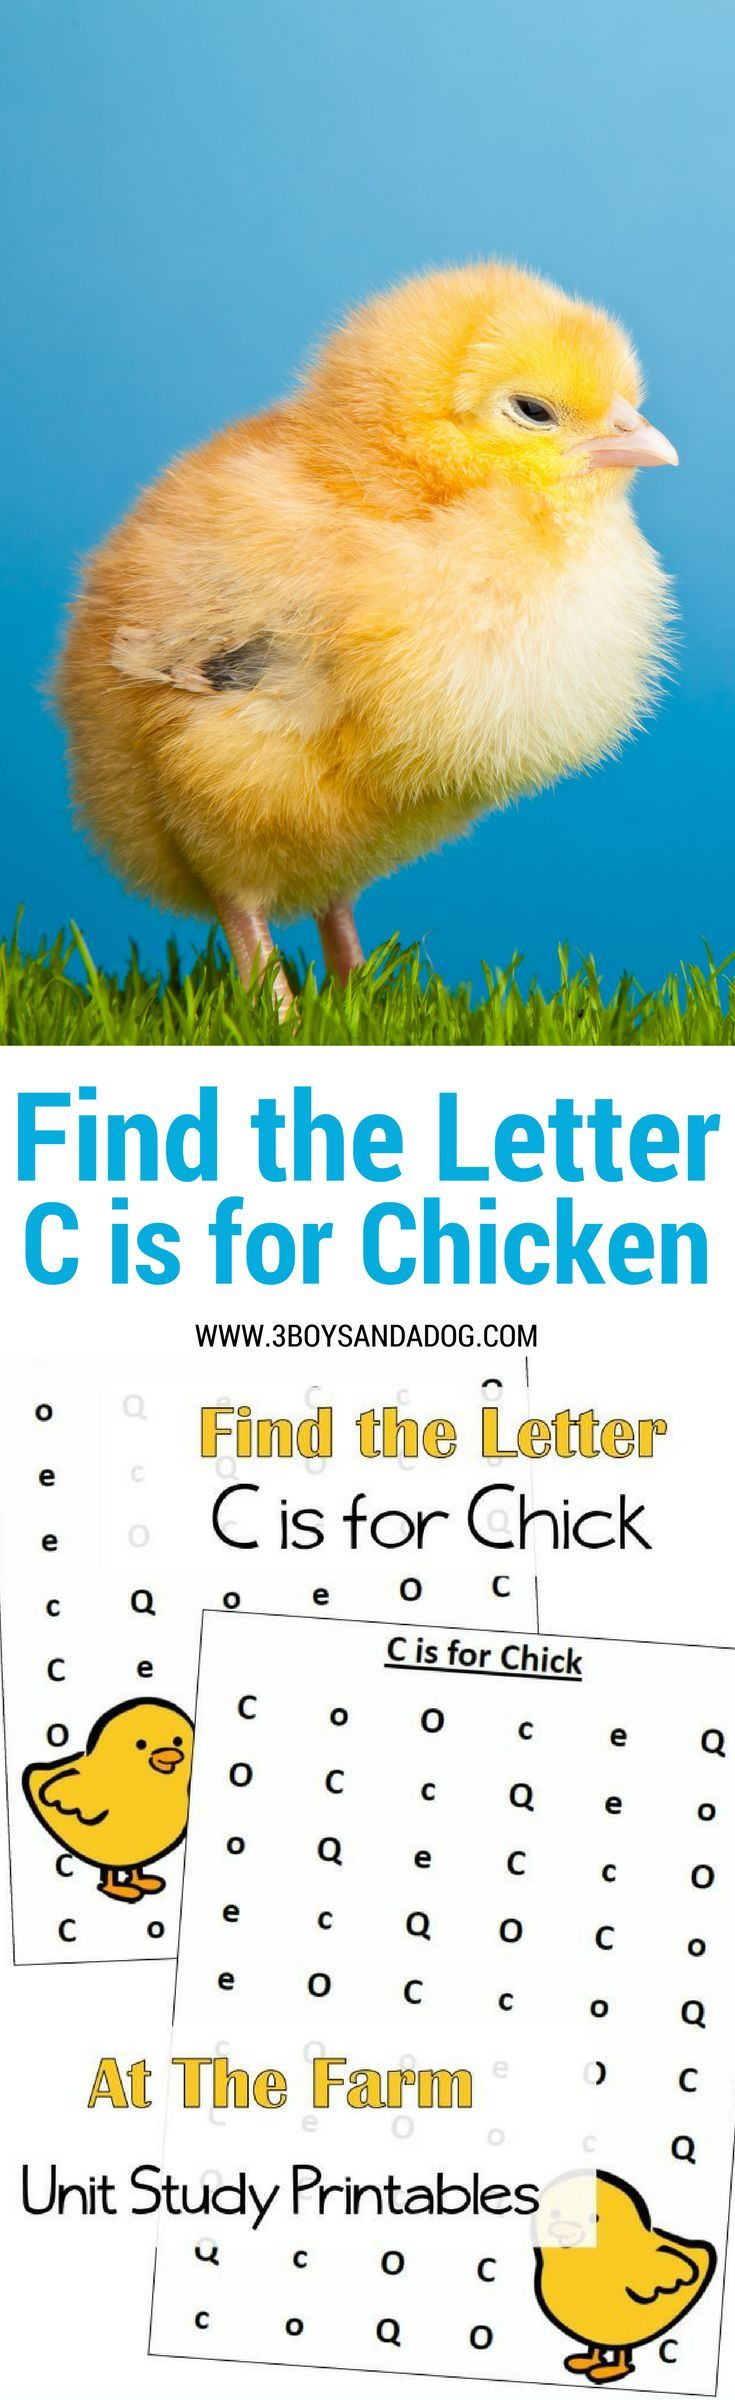 C is for Chicken homeschooling freebies – Free Homeschool Printables and Worksheets